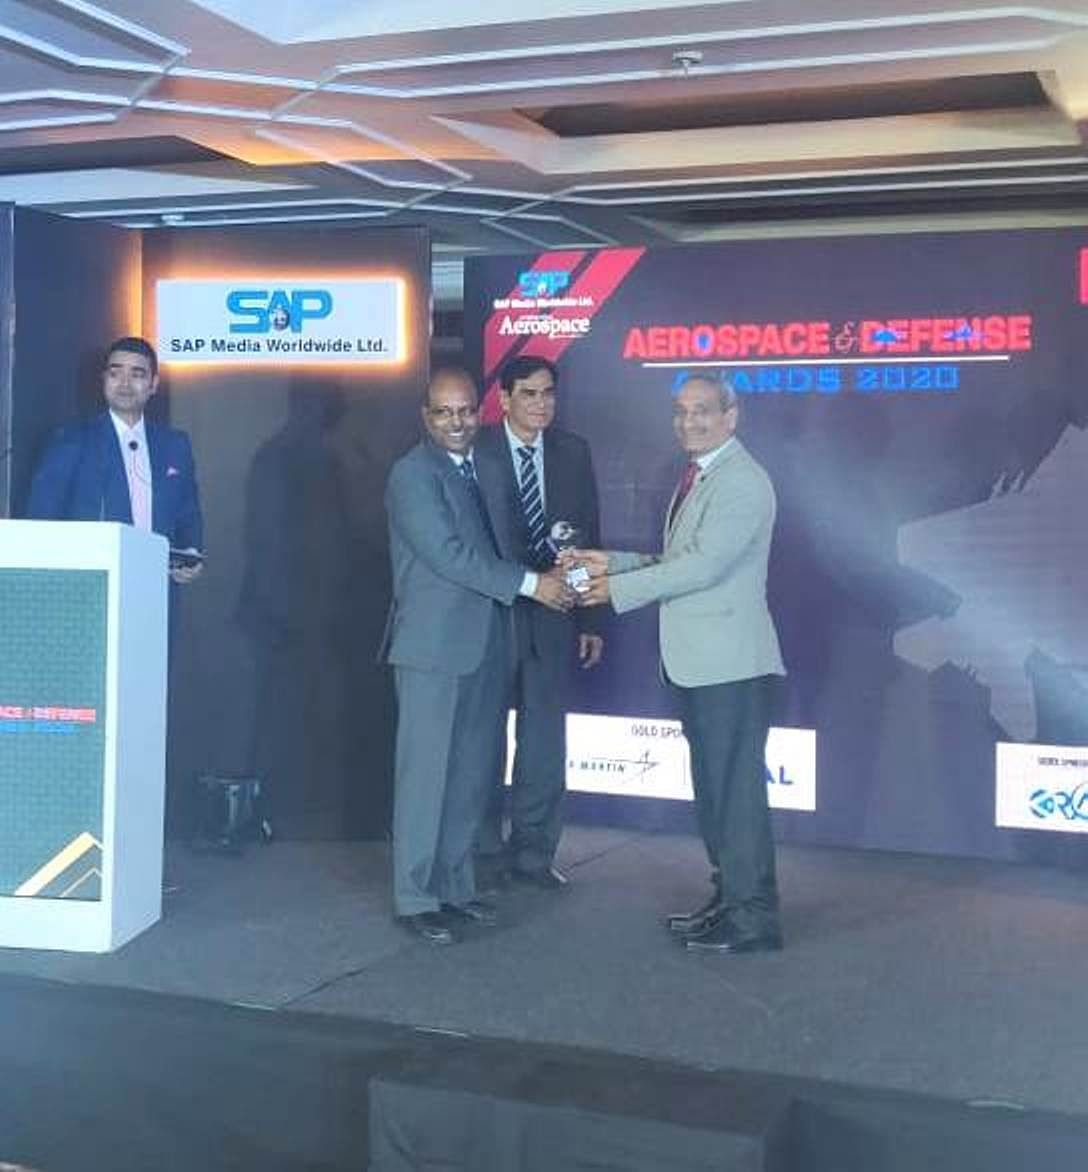 BEL bags awards for Exports and CSR at Aerospace & Defence Awards